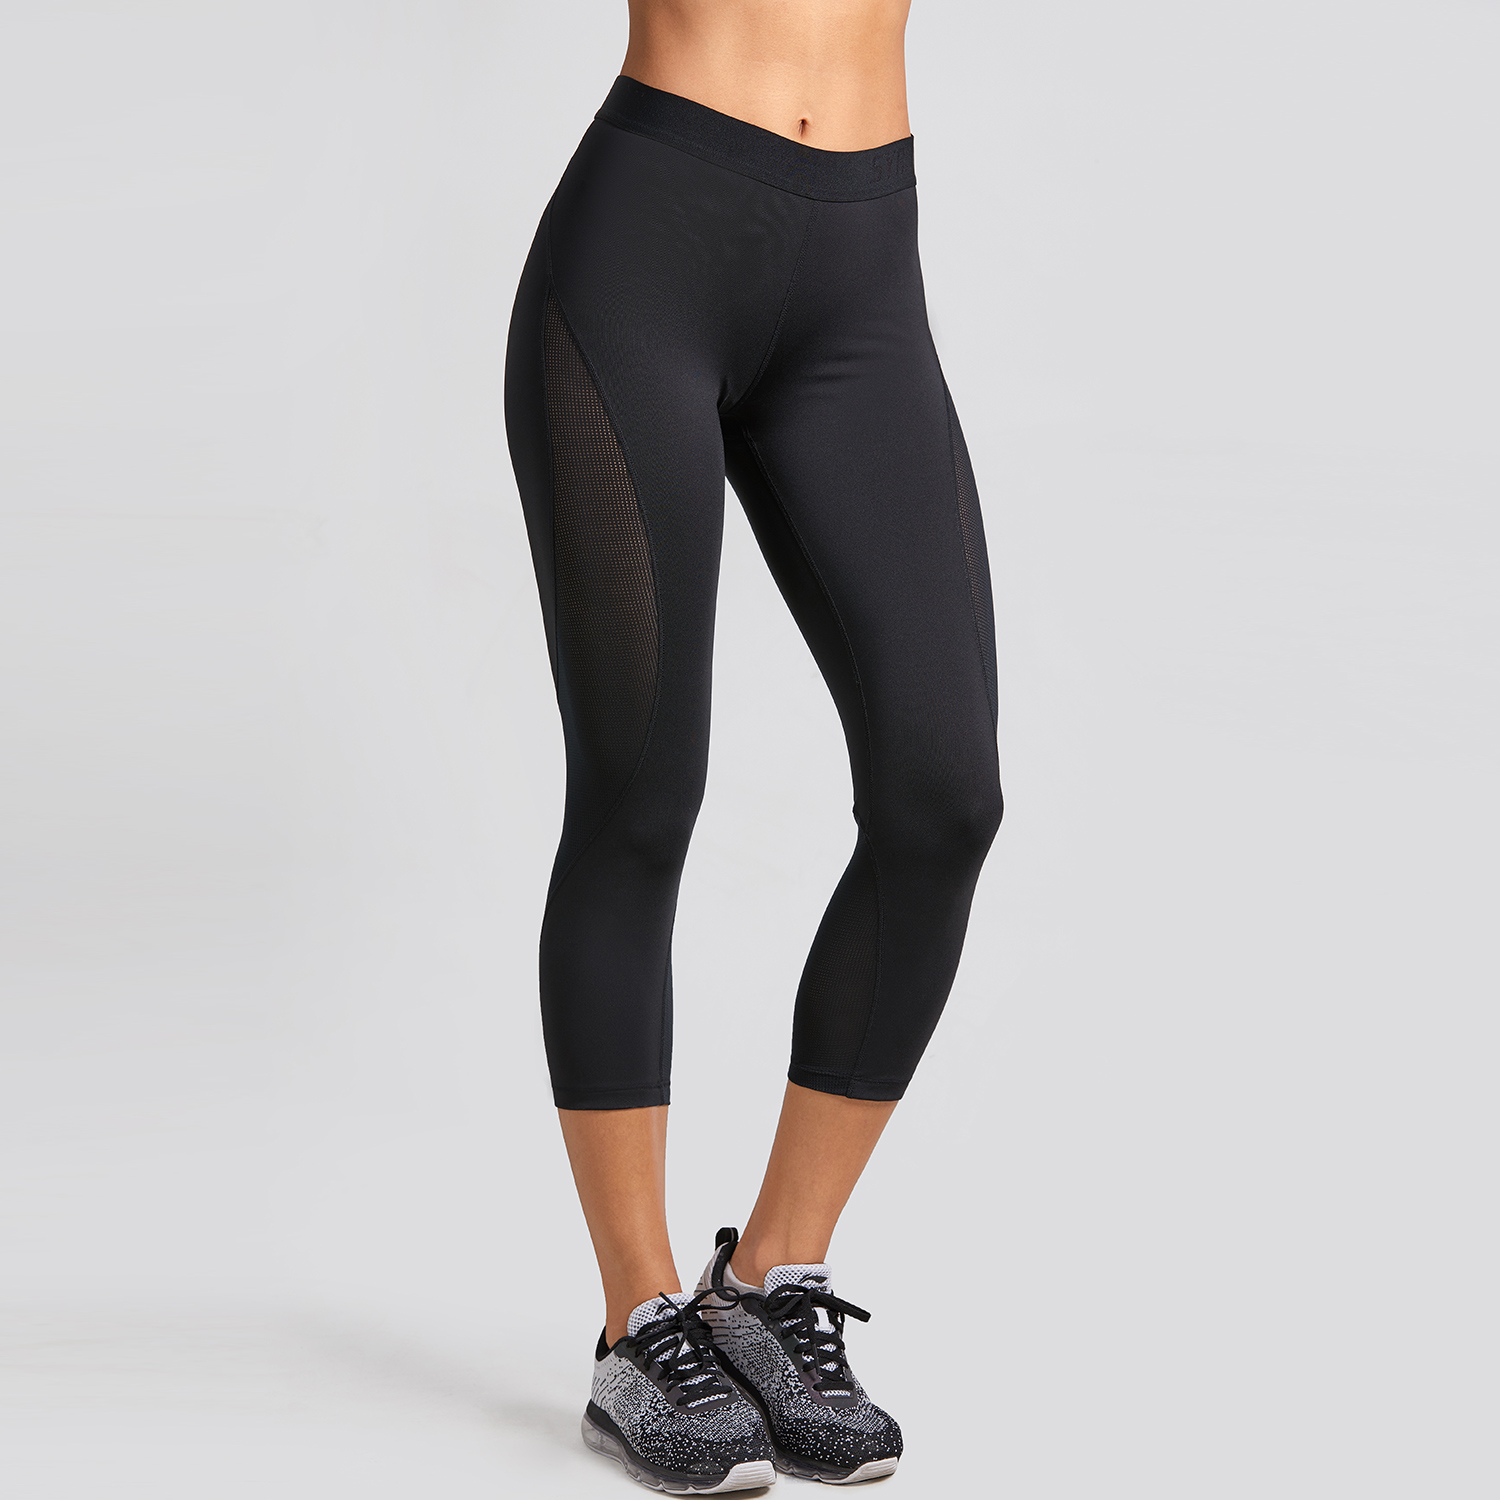 fbc9dc357eab2 Aliexpress.com : Buy CRZ YOGA Women's Slimming Mesh Sports Cropped Tights  Training Capri Leggings from Reliable Trainning & Exercise Pants suppliers  on CRZ ...